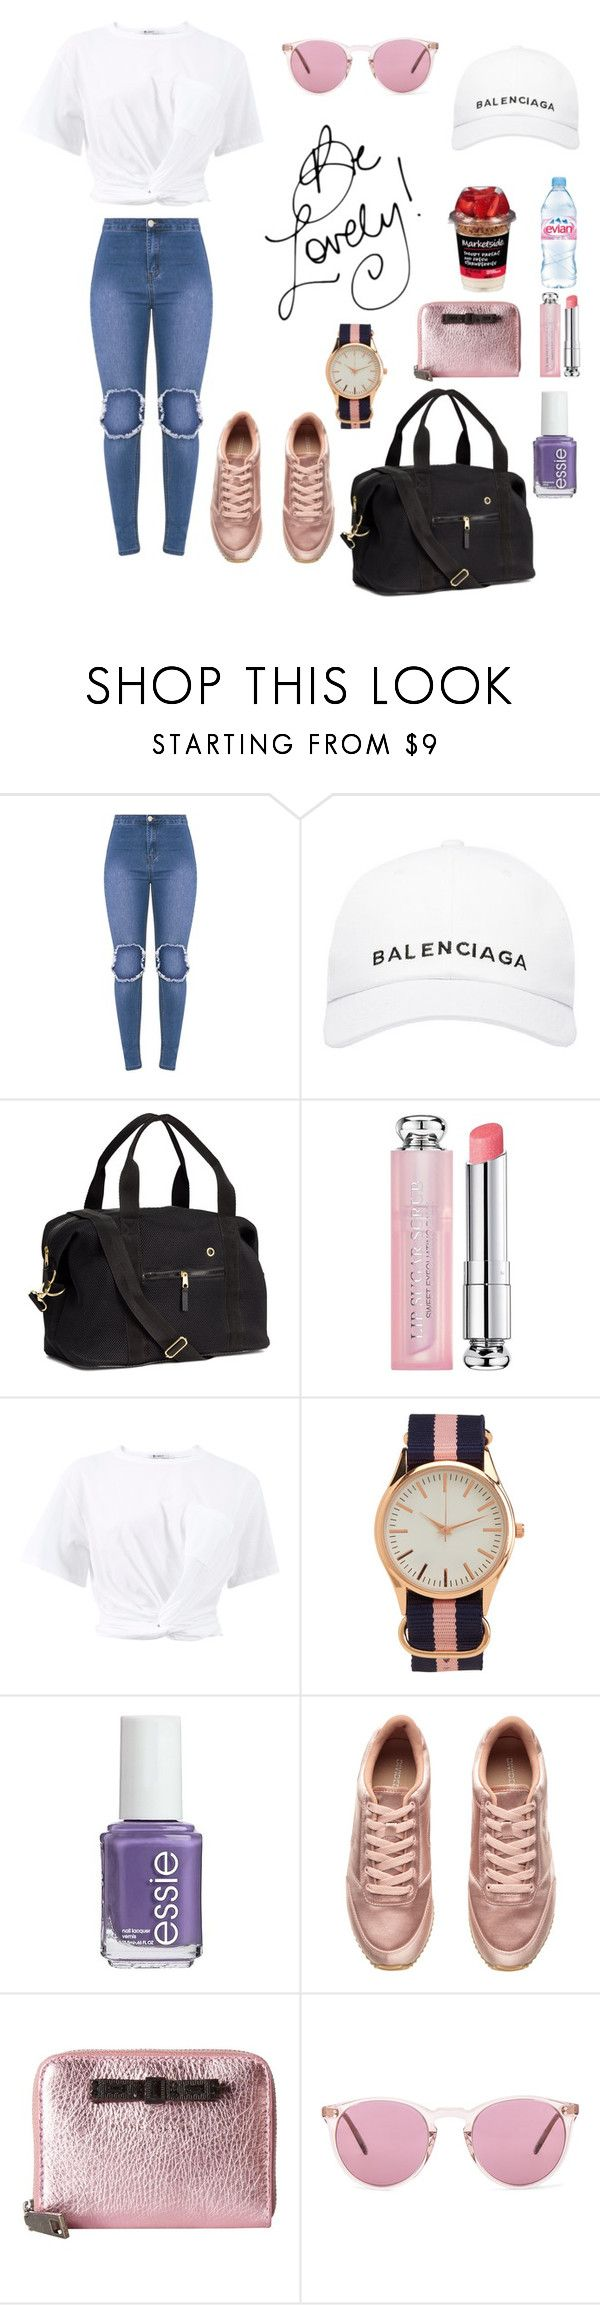 """Lovely Afternoon Walk⛅️👟"" by stylebyceylin ❤ liked on Polyvore featuring Balenciaga, H&M, Evian, Christian Dior, T By Alexander Wang, Aéropostale, Essie, Marc Jacobs, TC Fine Intimates and Oliver Peoples"